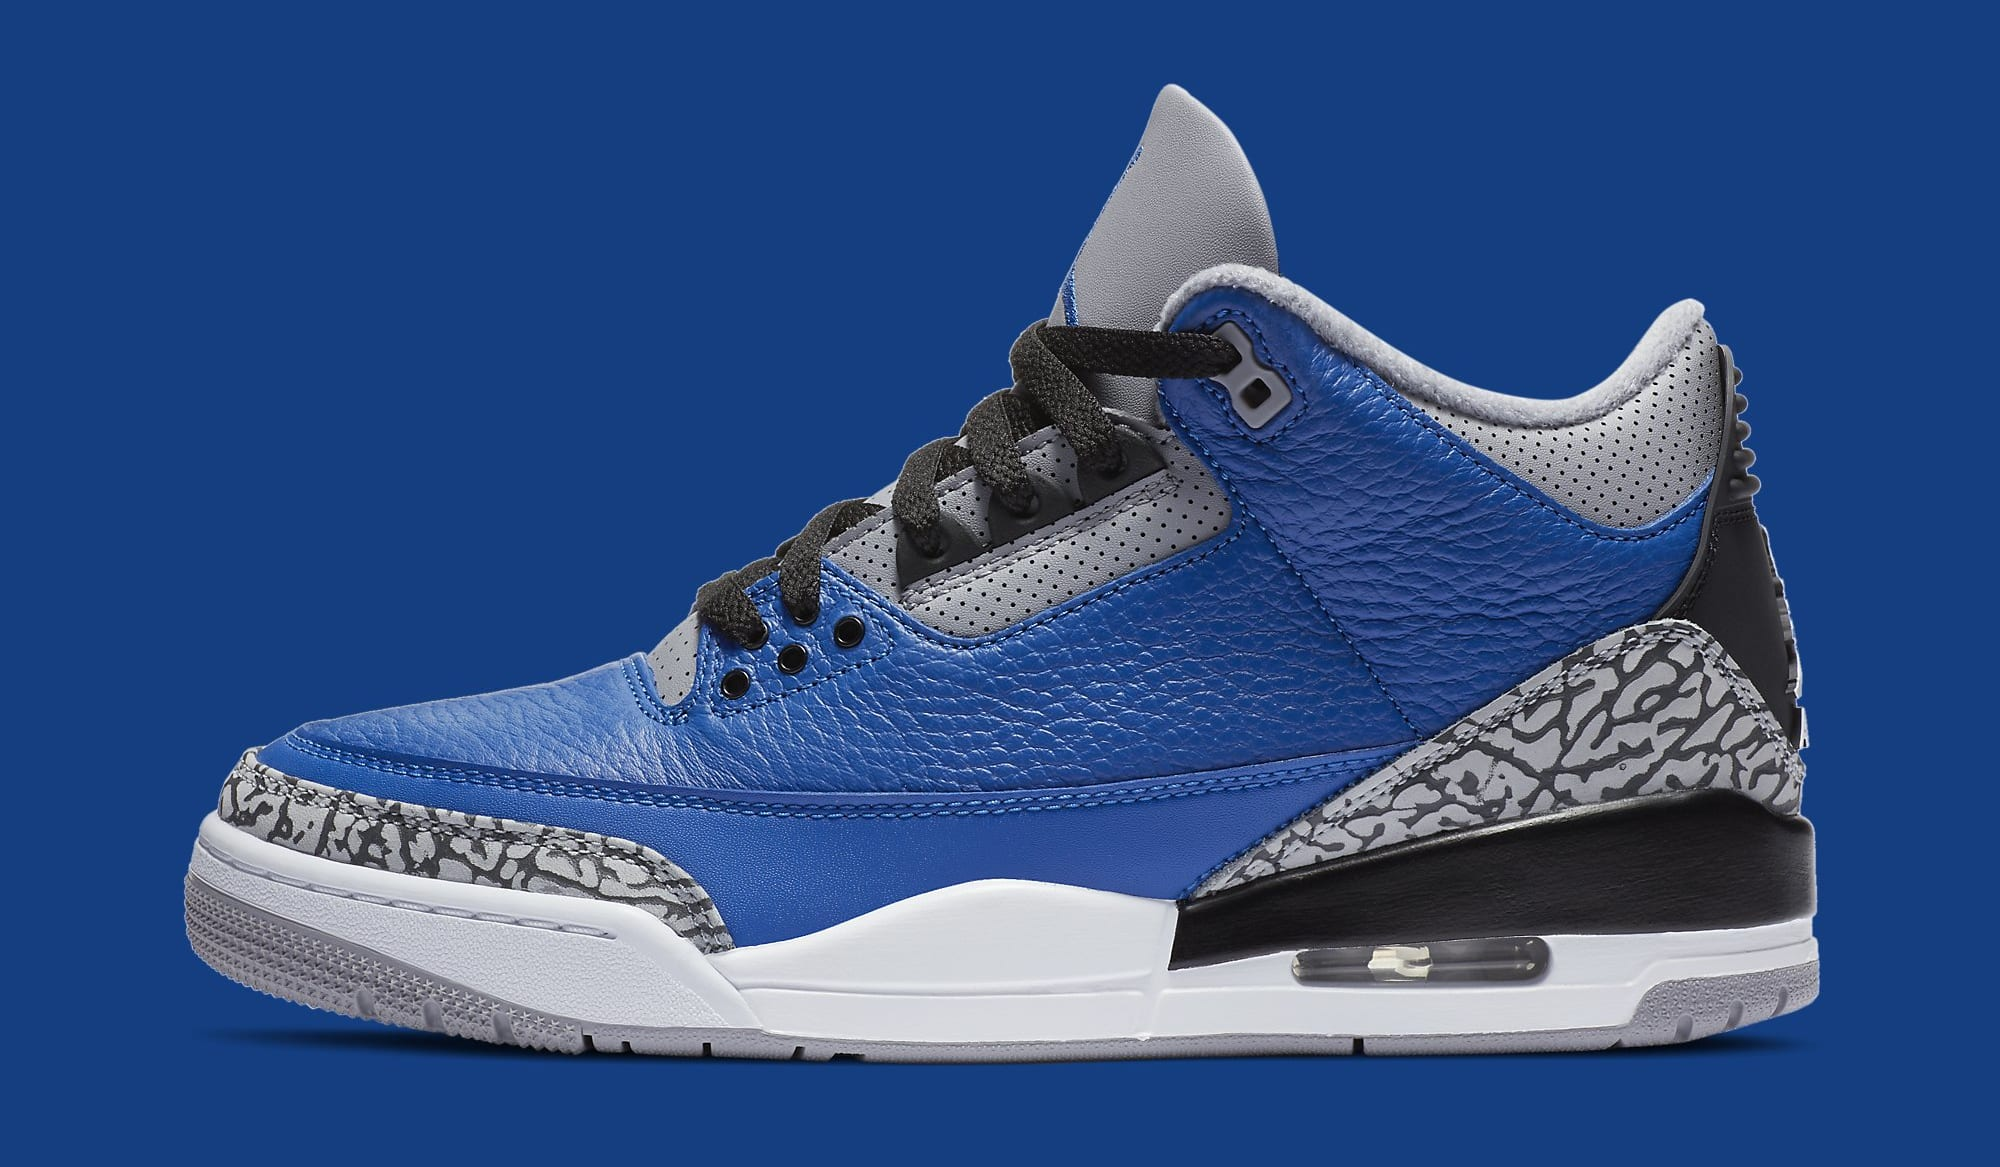 Air Jordan 3 III Retro 'Varsity Royal' CT8532-400 Lateral